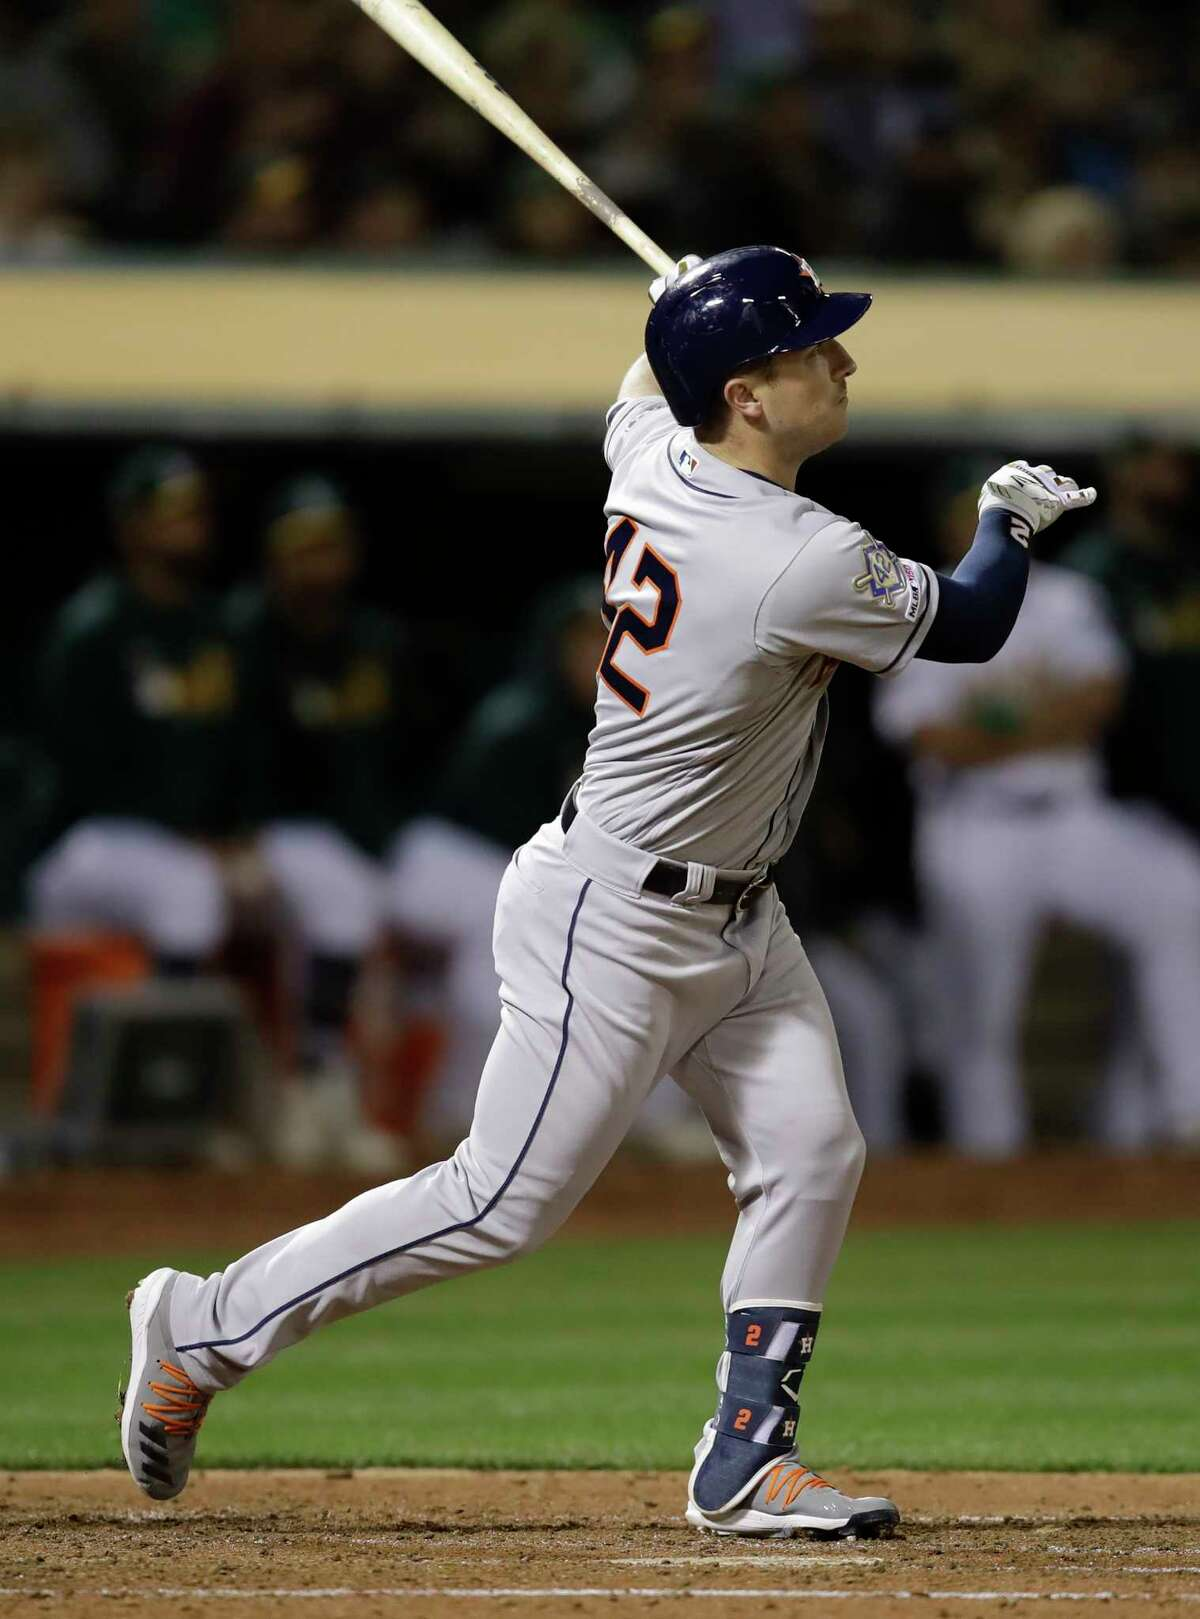 Houston Astros' Alex Bregman watches his grand slam hit off Oakland Athletics pitcher Liam Hendriks in the fourth inning of a baseball game Tuesday, April 16, 2019, in Oakland, Calif. (AP Photo/Ben Margot)